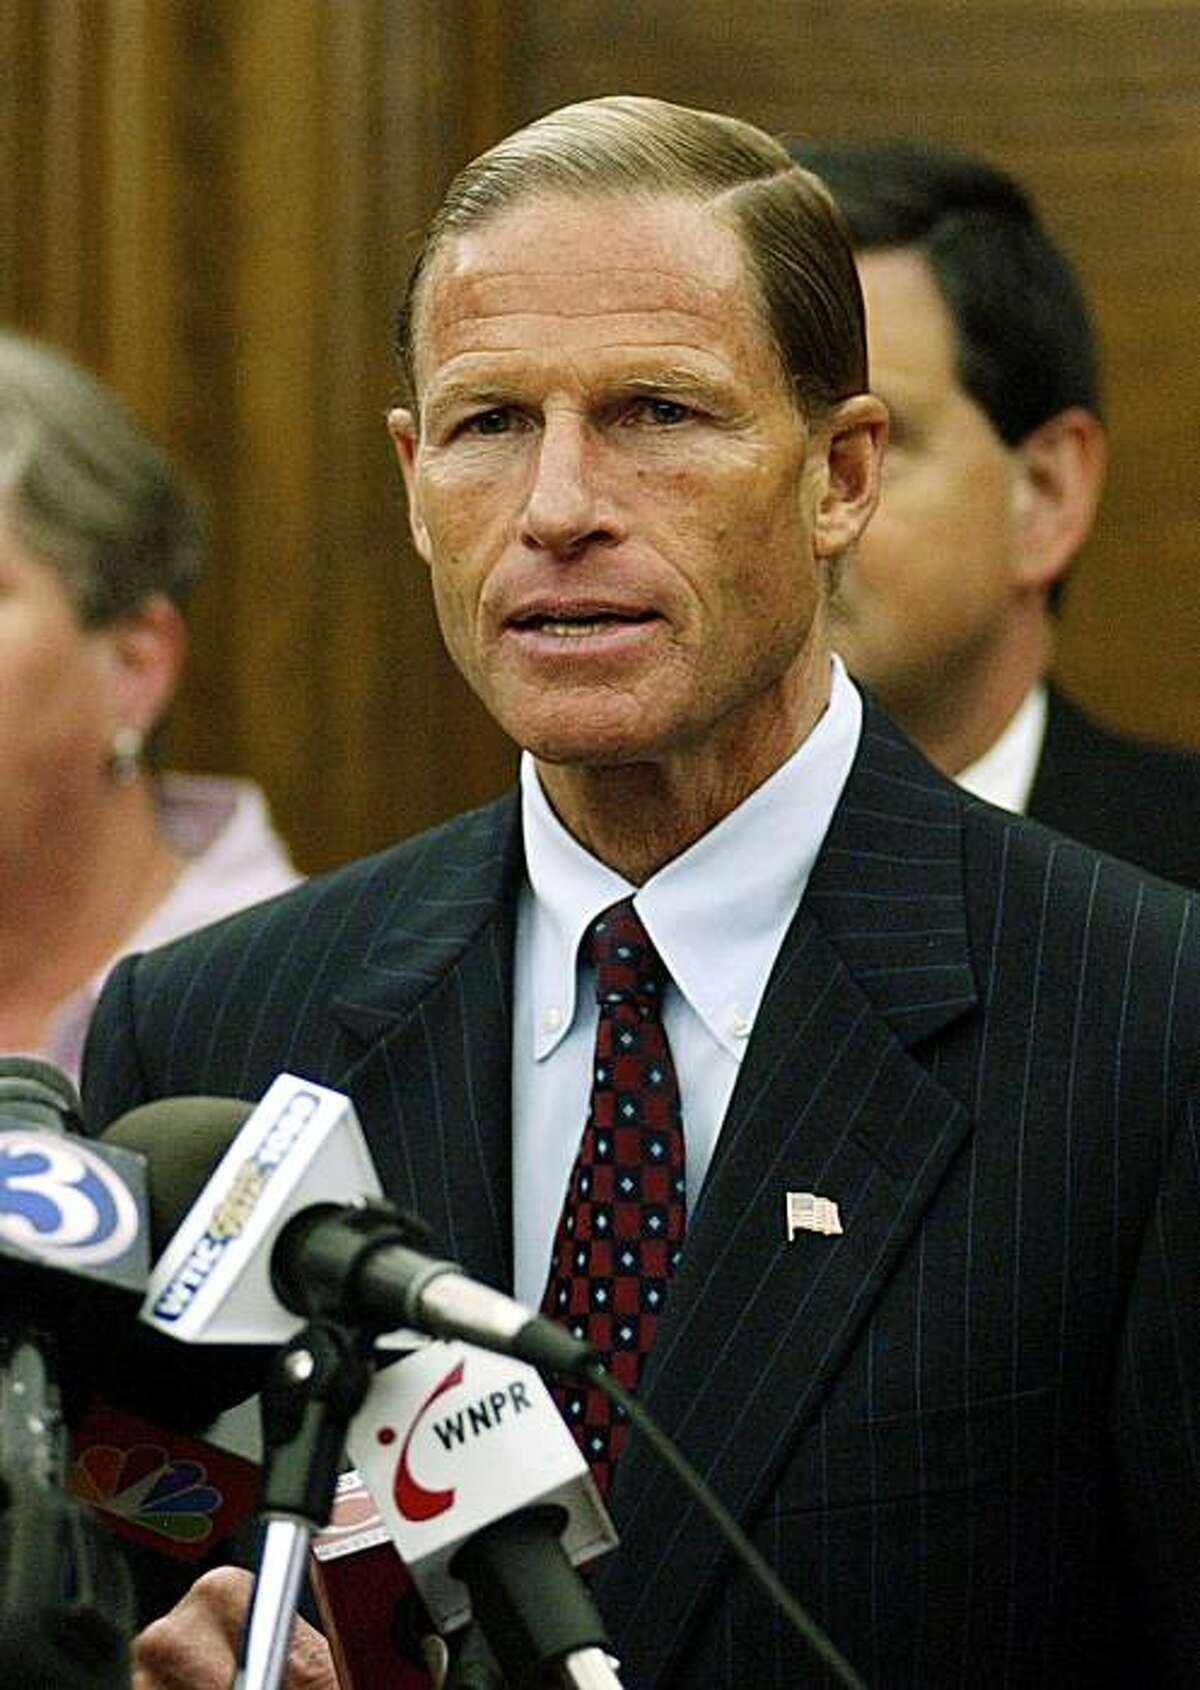 State Attorney General Richard Blumenthal speaks at a news conference Monday, Aug. 22, 2005, in his office in Hartford, Conn., where he announced that the state of Connecticut filed a federal lawsuit challenging President Bush's No Child Left Behind school reform law, arguing it is illegal because it requires expensive testing and programs it doesn't pay for. (AP Photo/Jessica Hill)